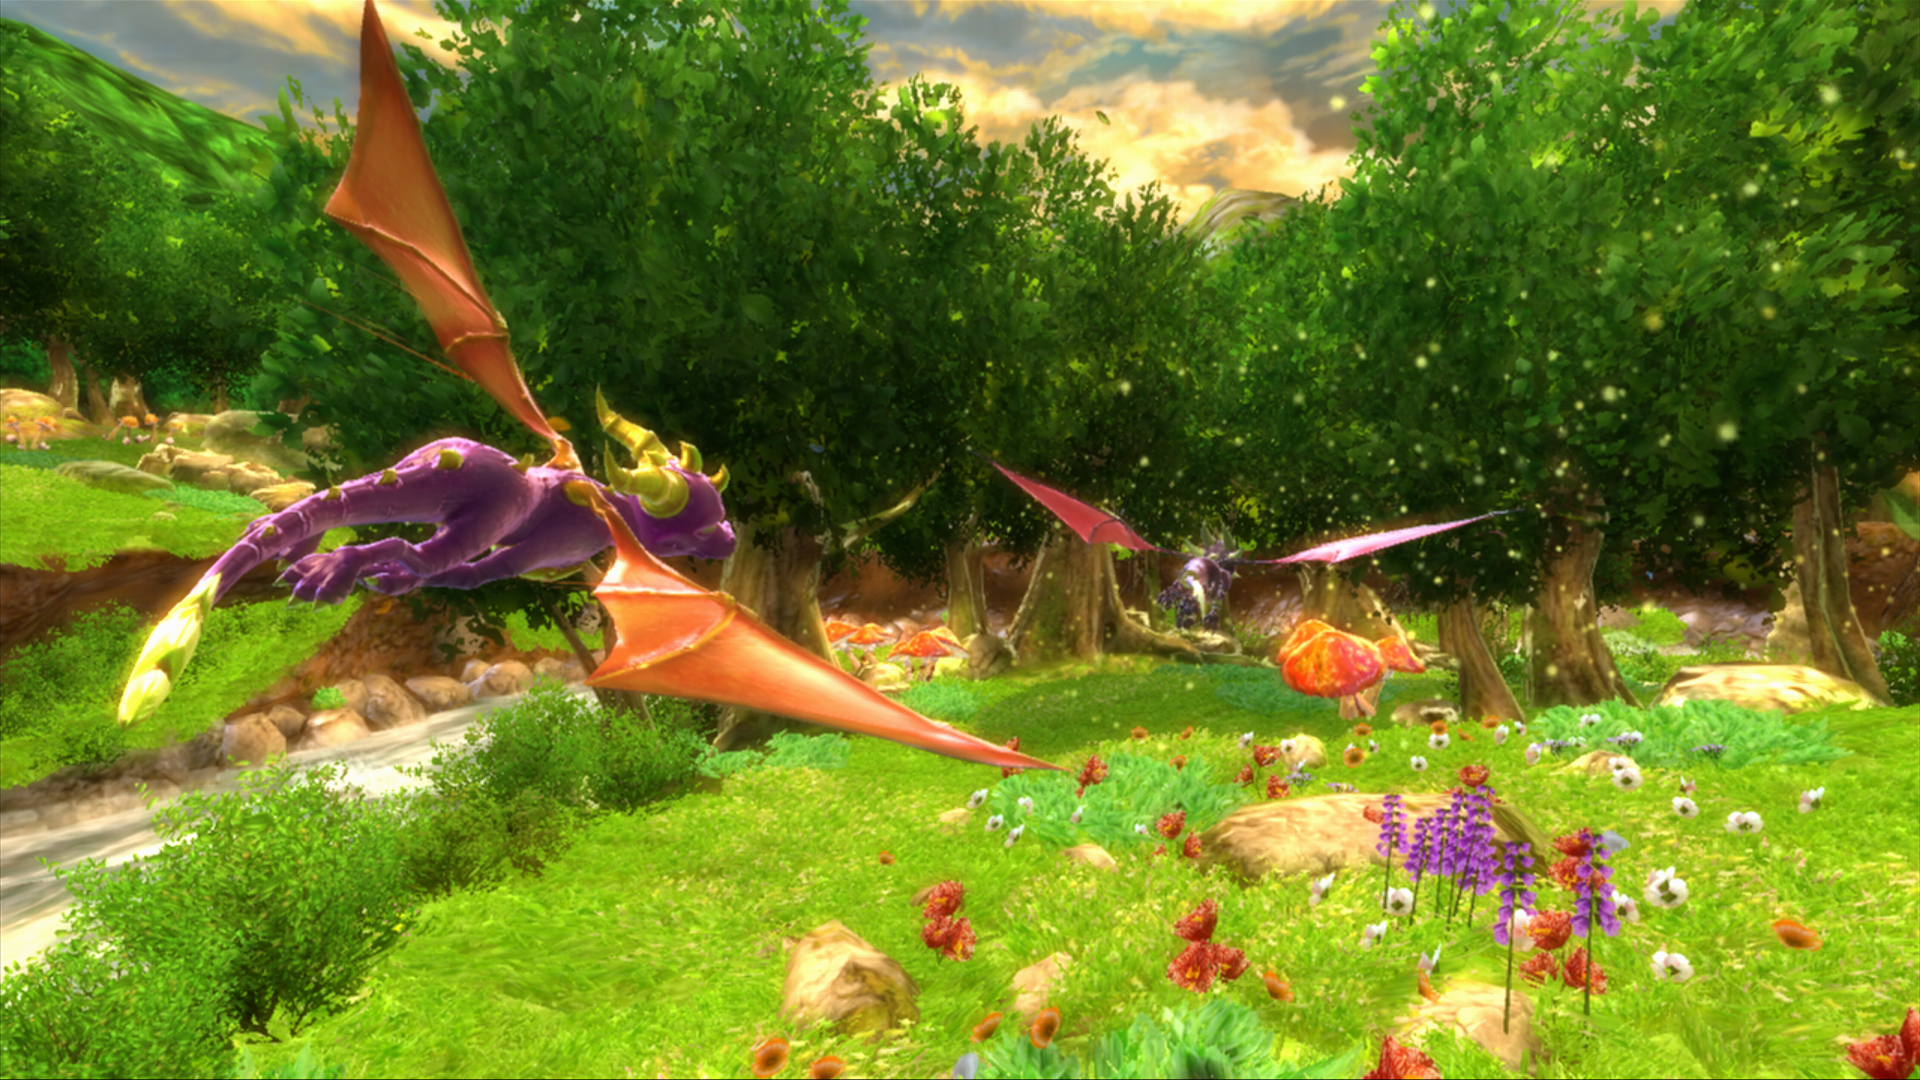 Spyro and cynder full hd wallpaper and background image - Spyro wallpaper ...